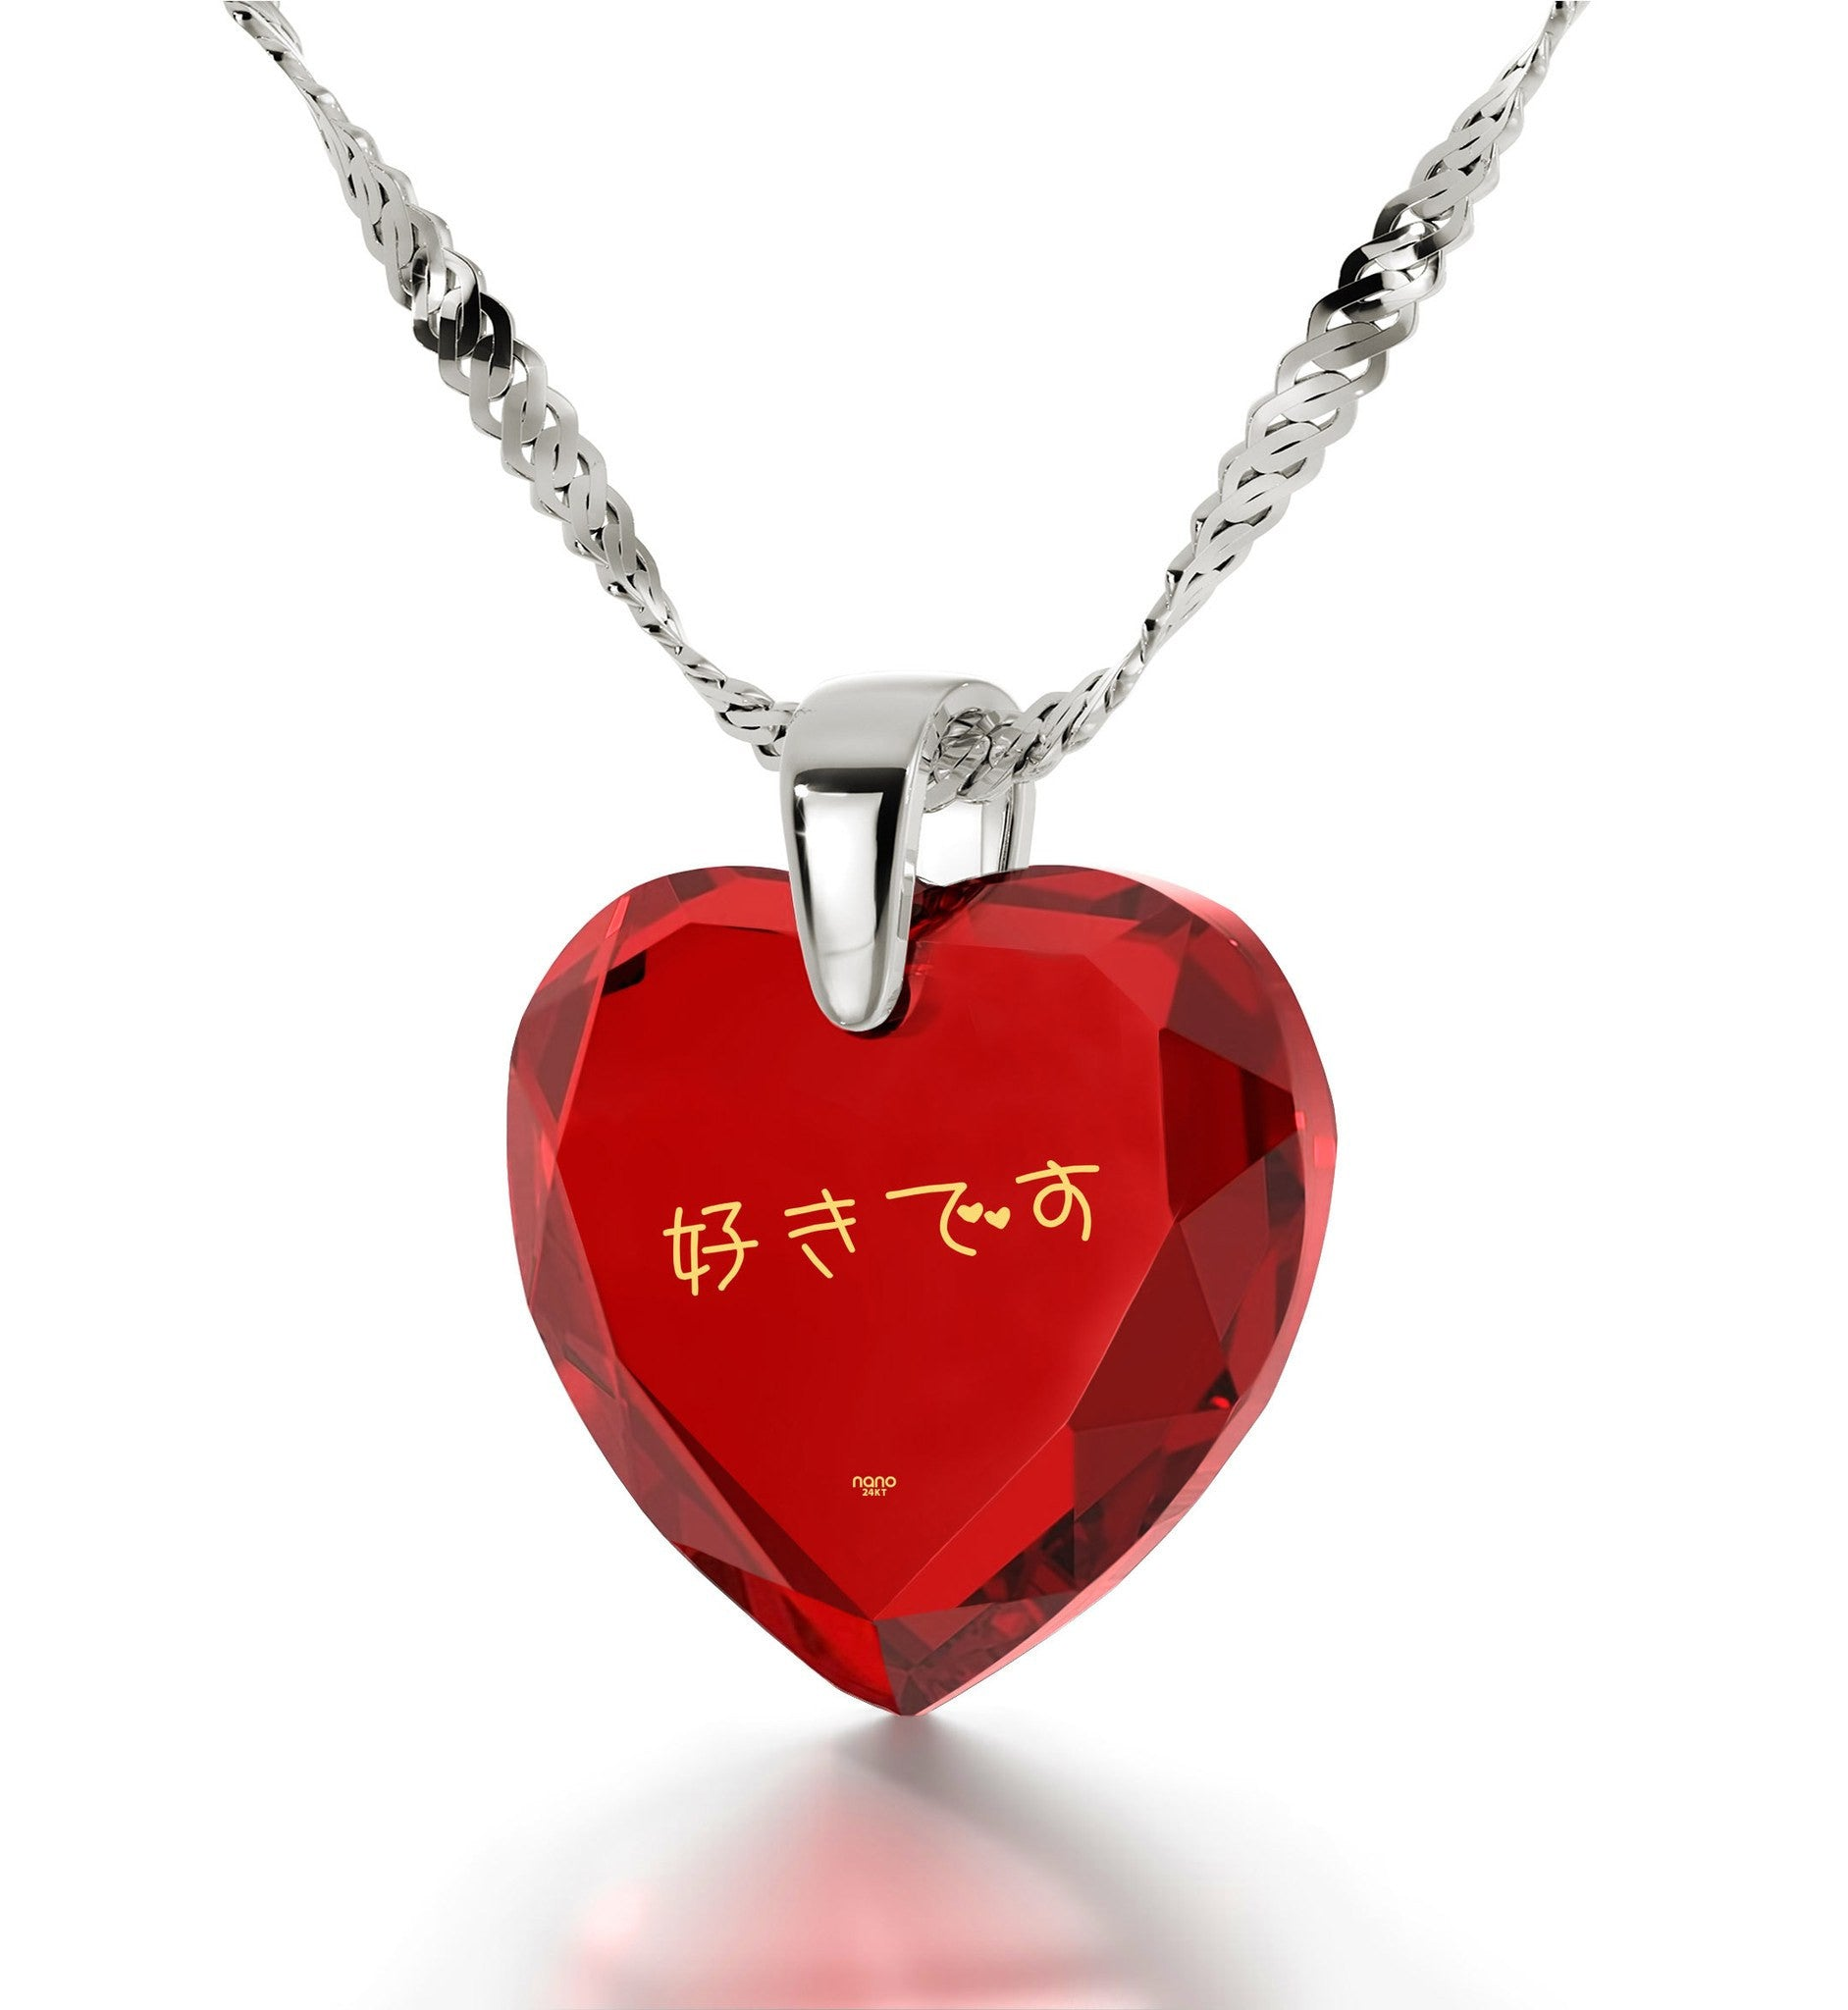 Top Gift Ideas for Women, Red Heart Necklace,Love in Japanese, 7th Anniversary Gift for Her, Nano Jewelry